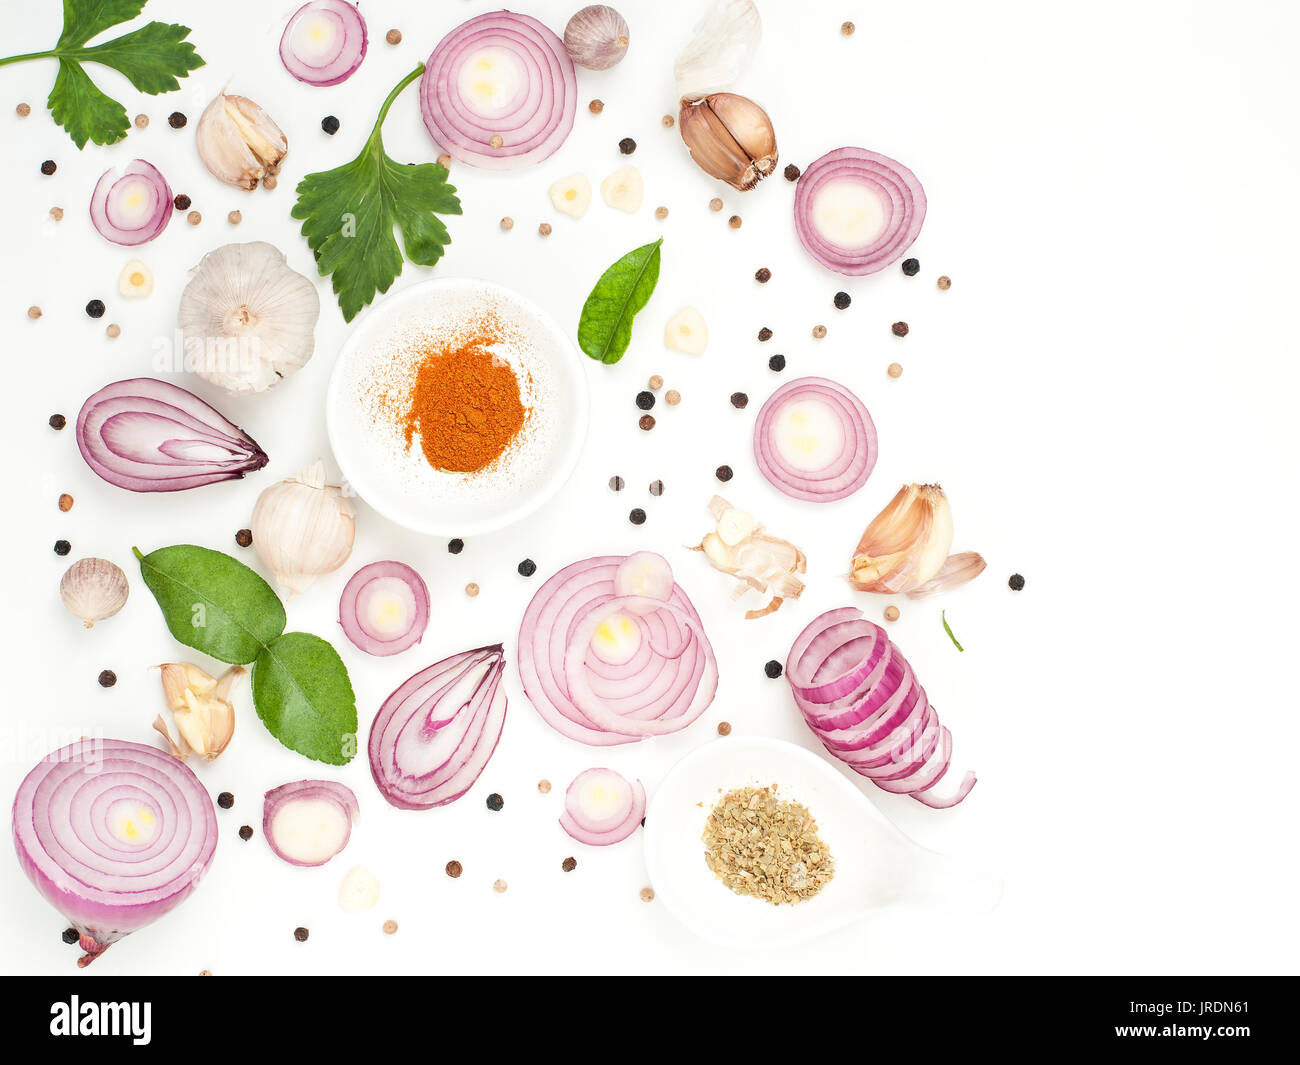 garlic onion pepper colorful spices tropical flavoring food on white background Stock Photo